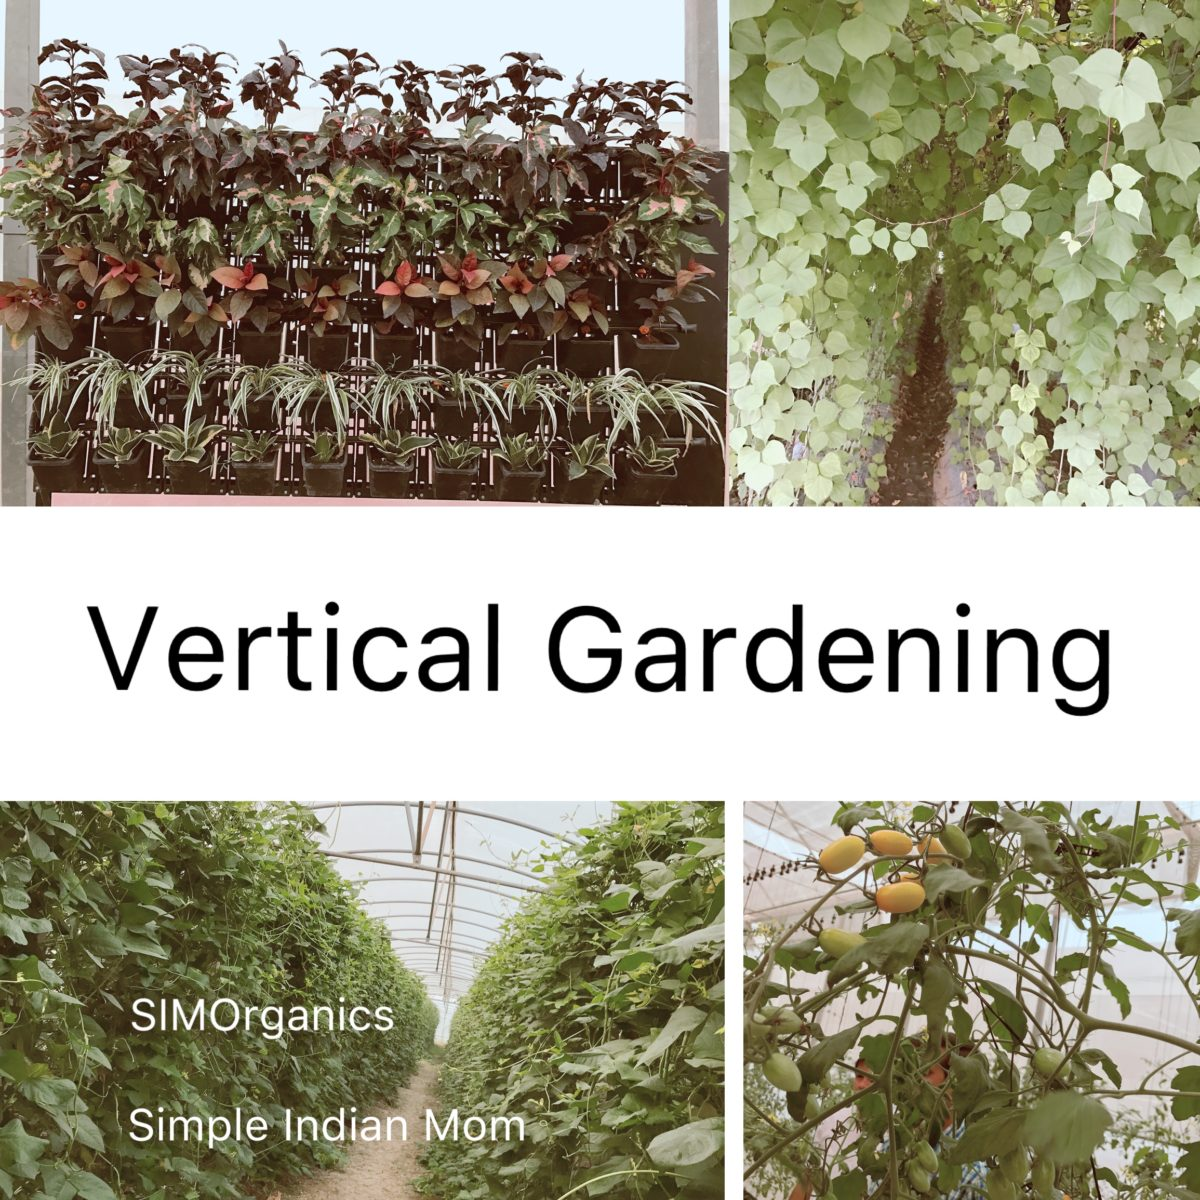 Vertical Gadening - Basics to Grow Your Own Veggies